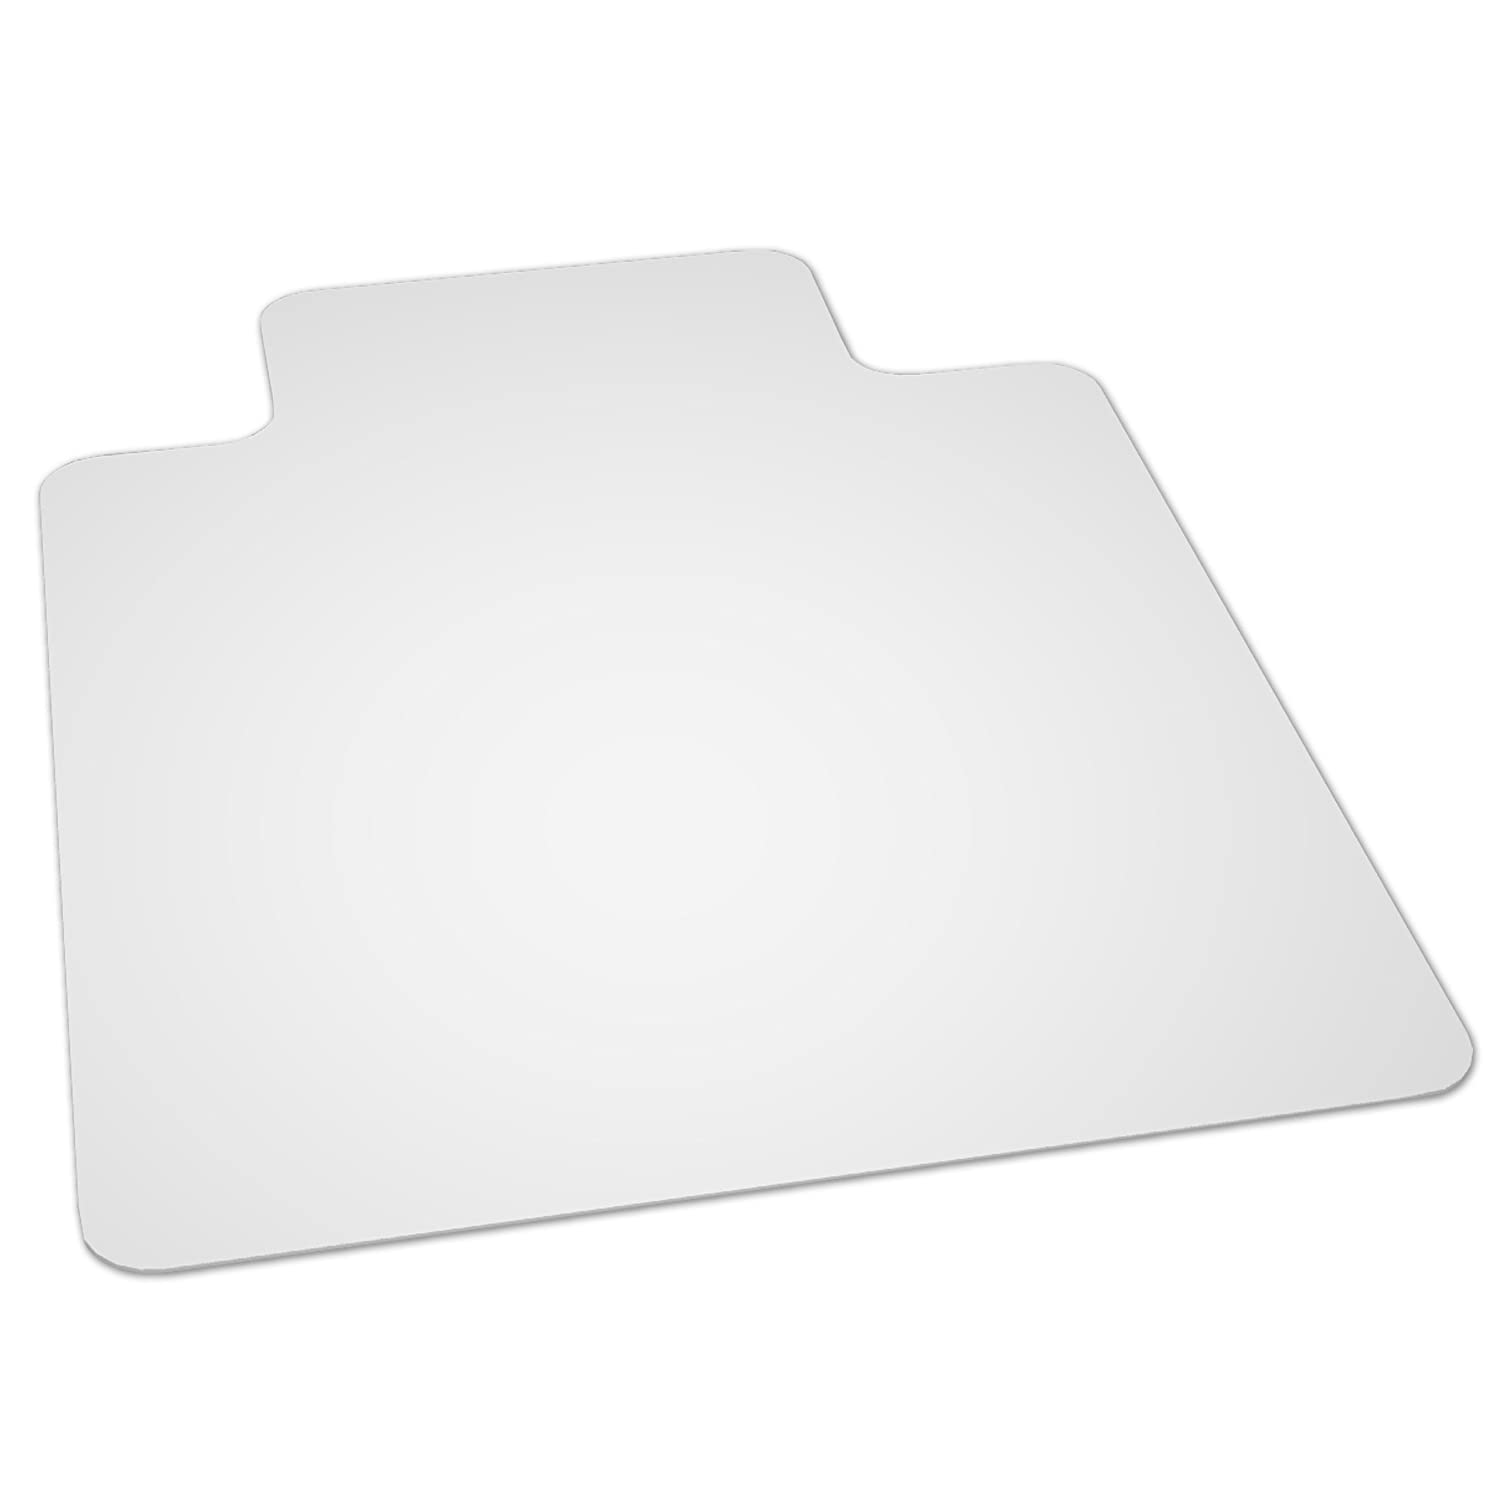 chair mat with lip. Amazon.com: ES Robbins EverLife 36-Inch By 48-Inch Multitask Series Hard Floor With Lip Vinyl Chair Mat, Clear: Kitchen \u0026 Dining Mat H